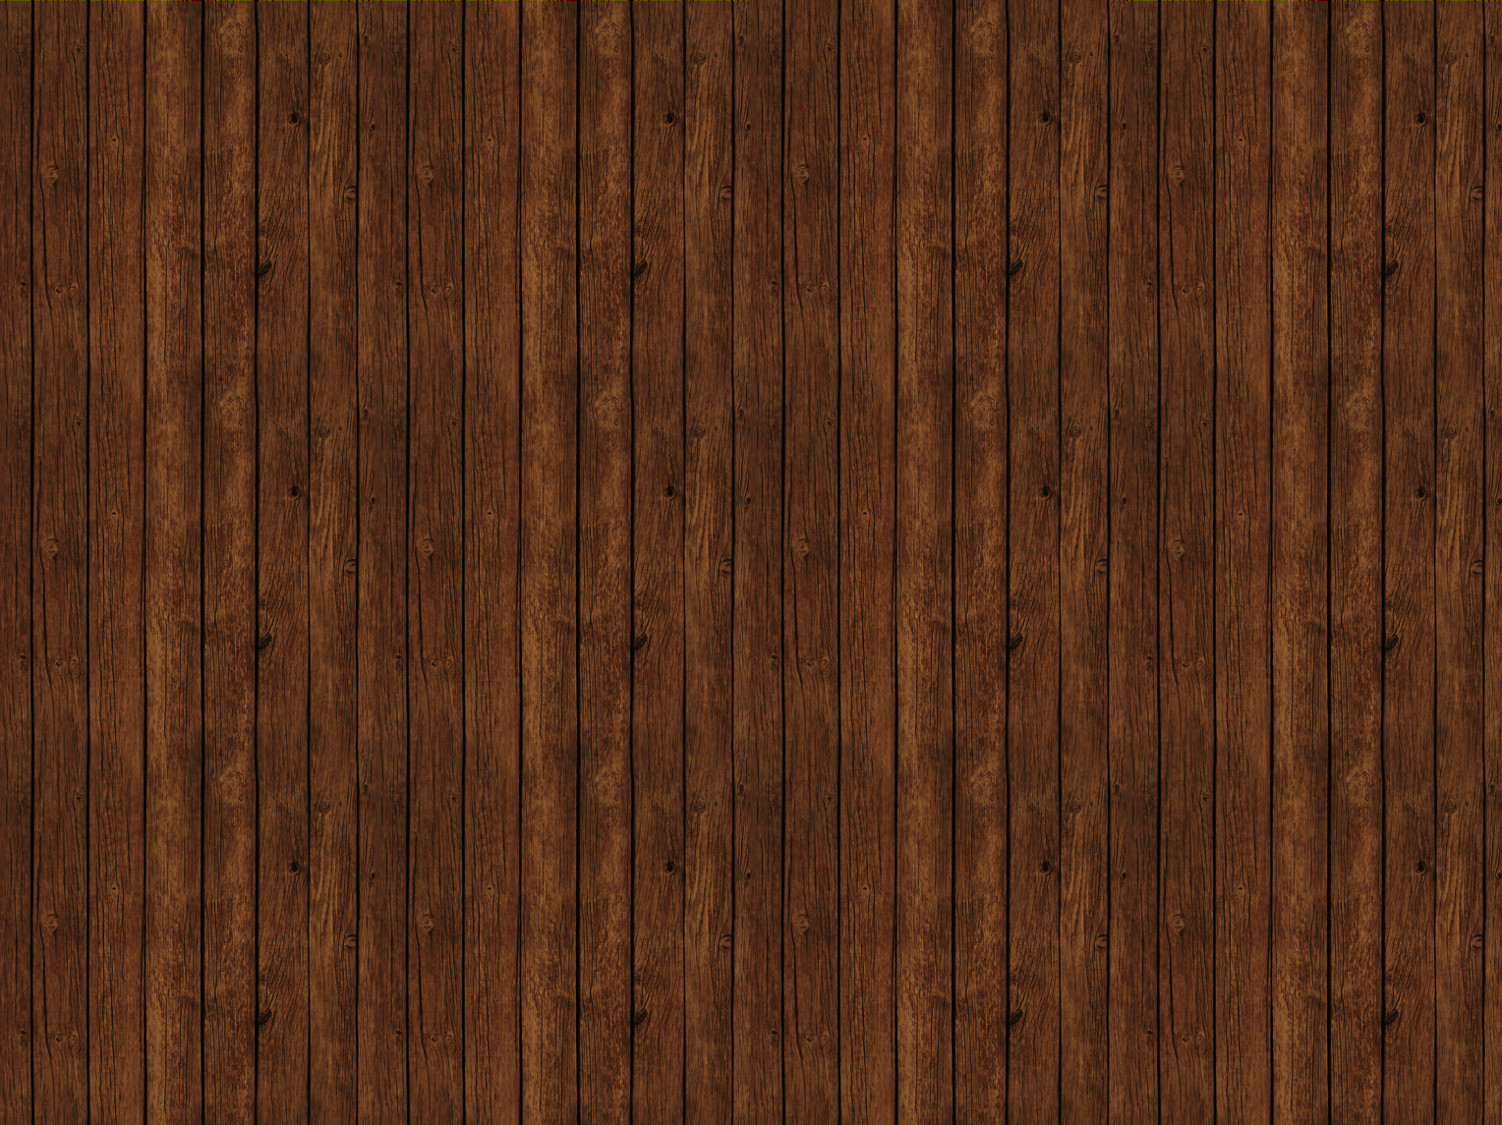 dark hardwood floor texture of download dark wood floors background infinitieslounge com with projects idea dark wood floors background 12 dark brown wood floors background new in great floor